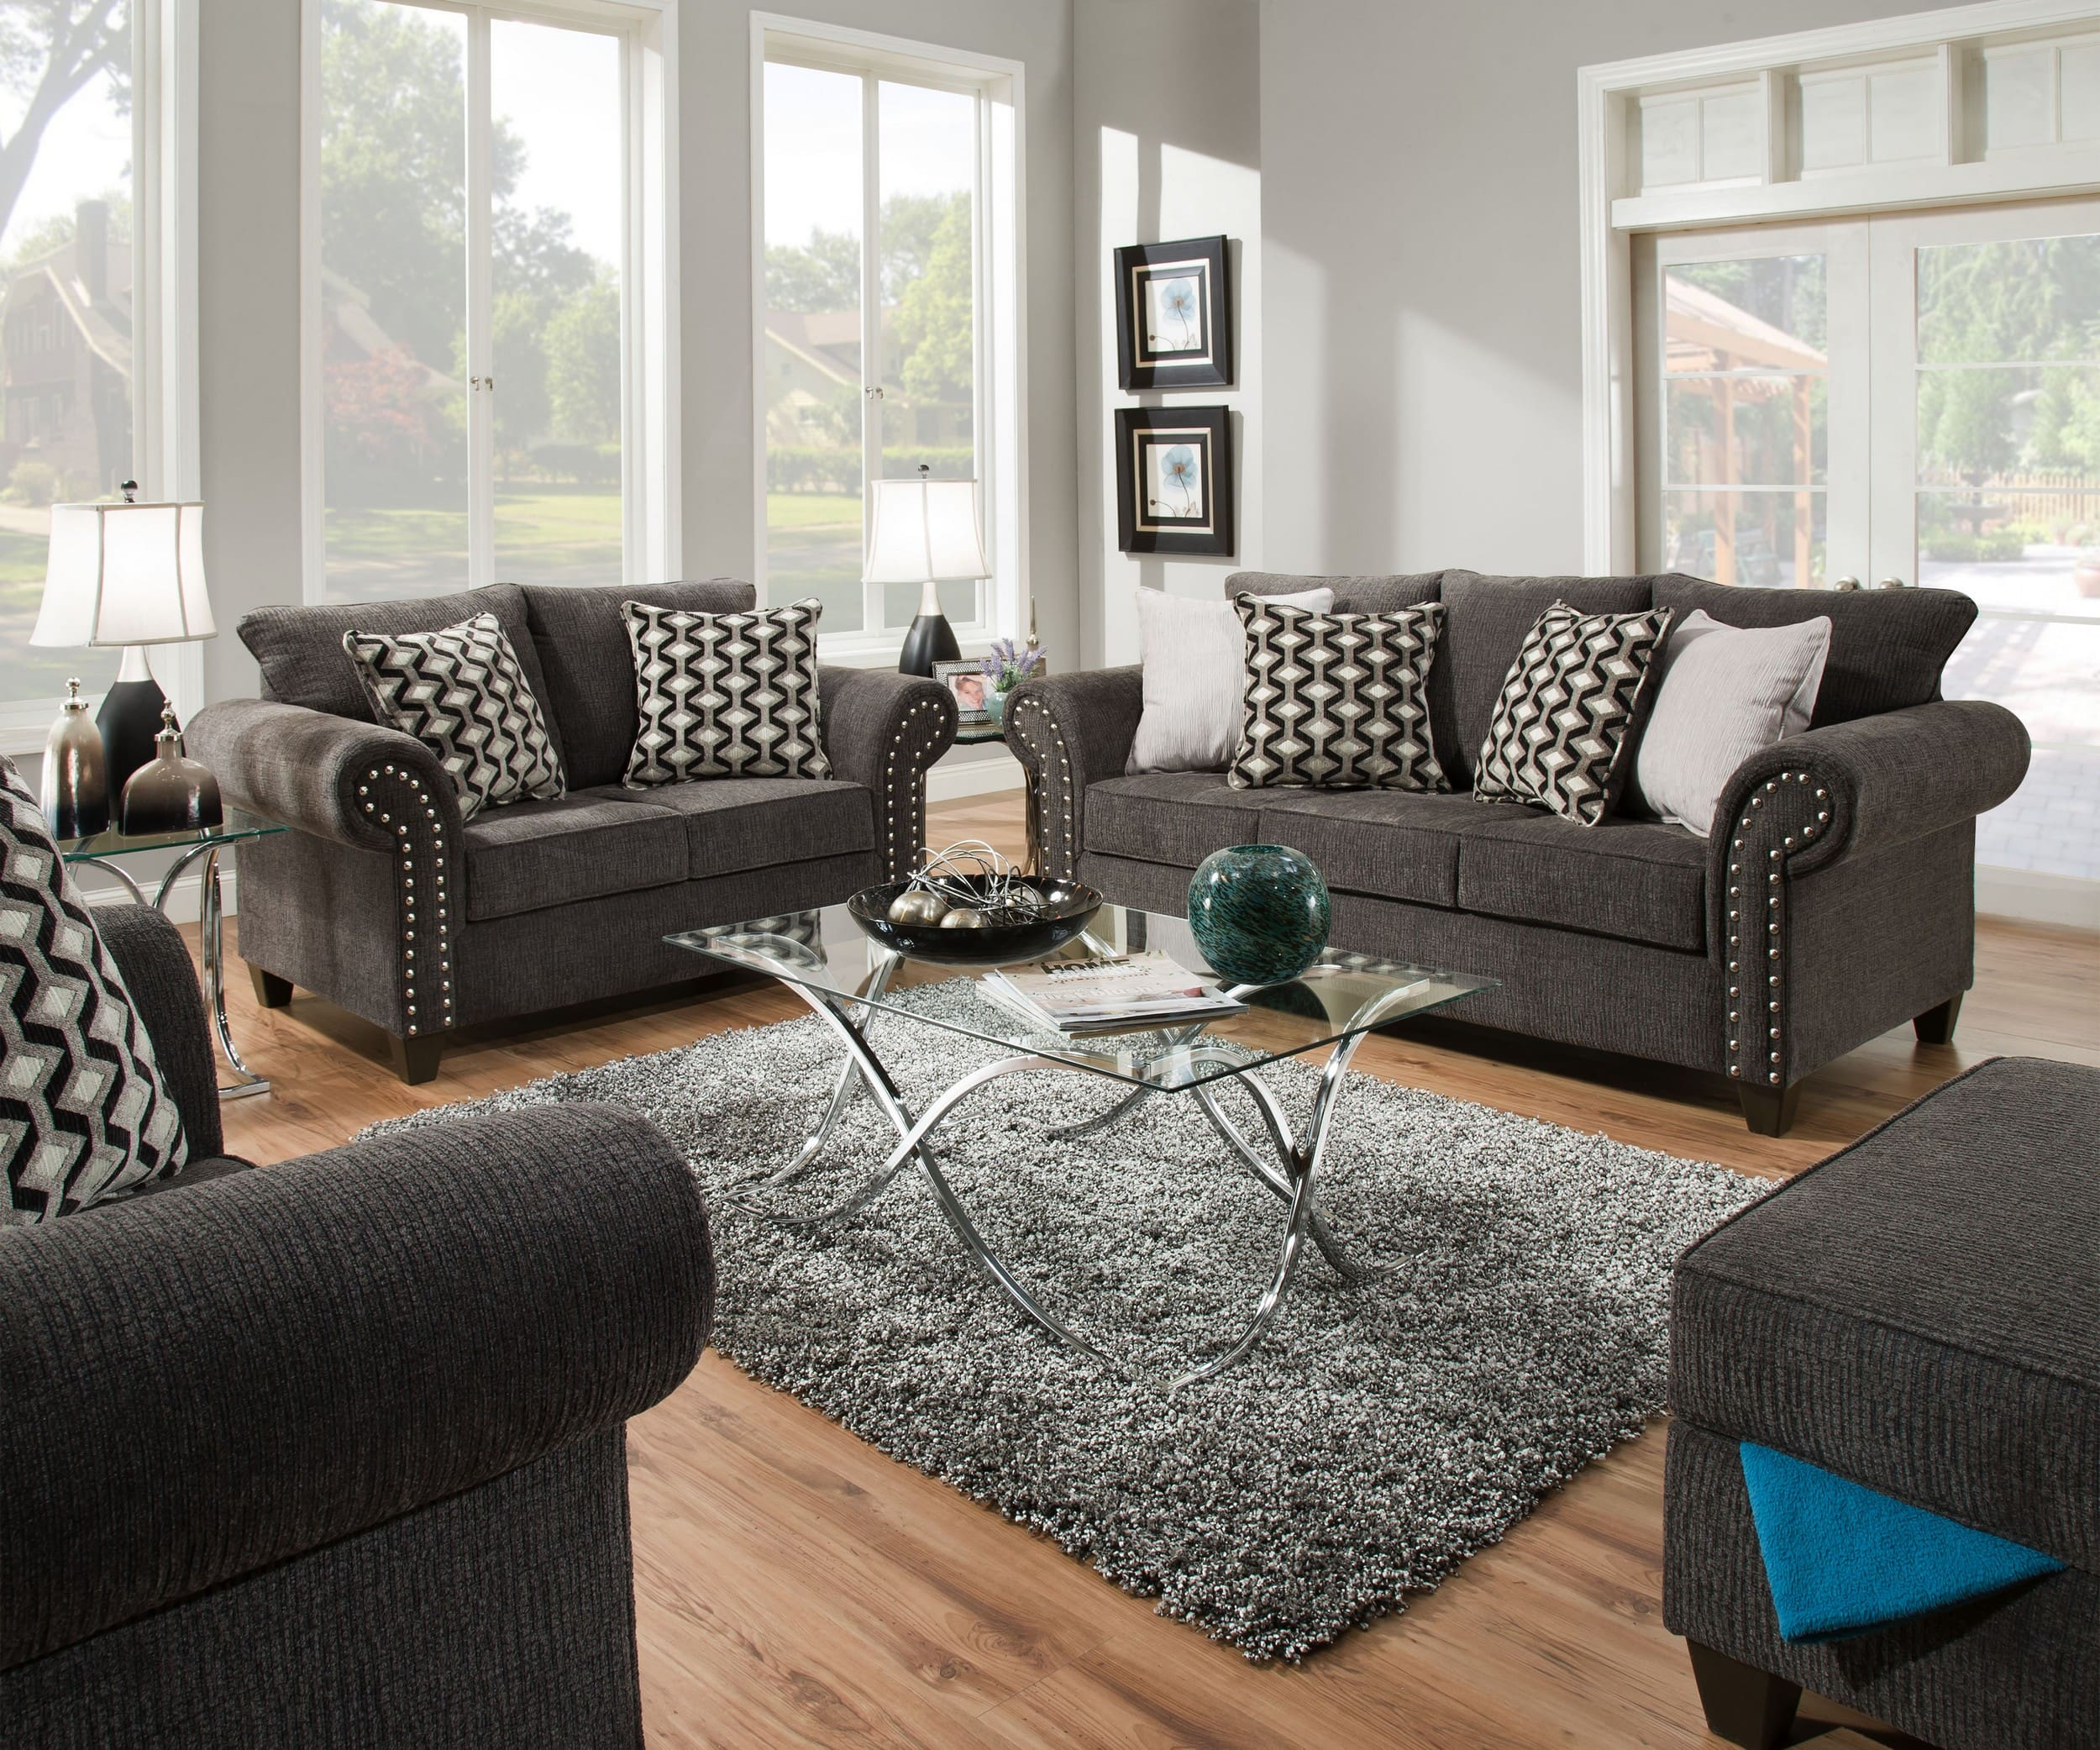 Simmons Upholstery 8036 3 Reed Charcoal 8036 2 Reed Charcoal 8036 1 Reed Charcoal intended for Living Room Set 3 Piece